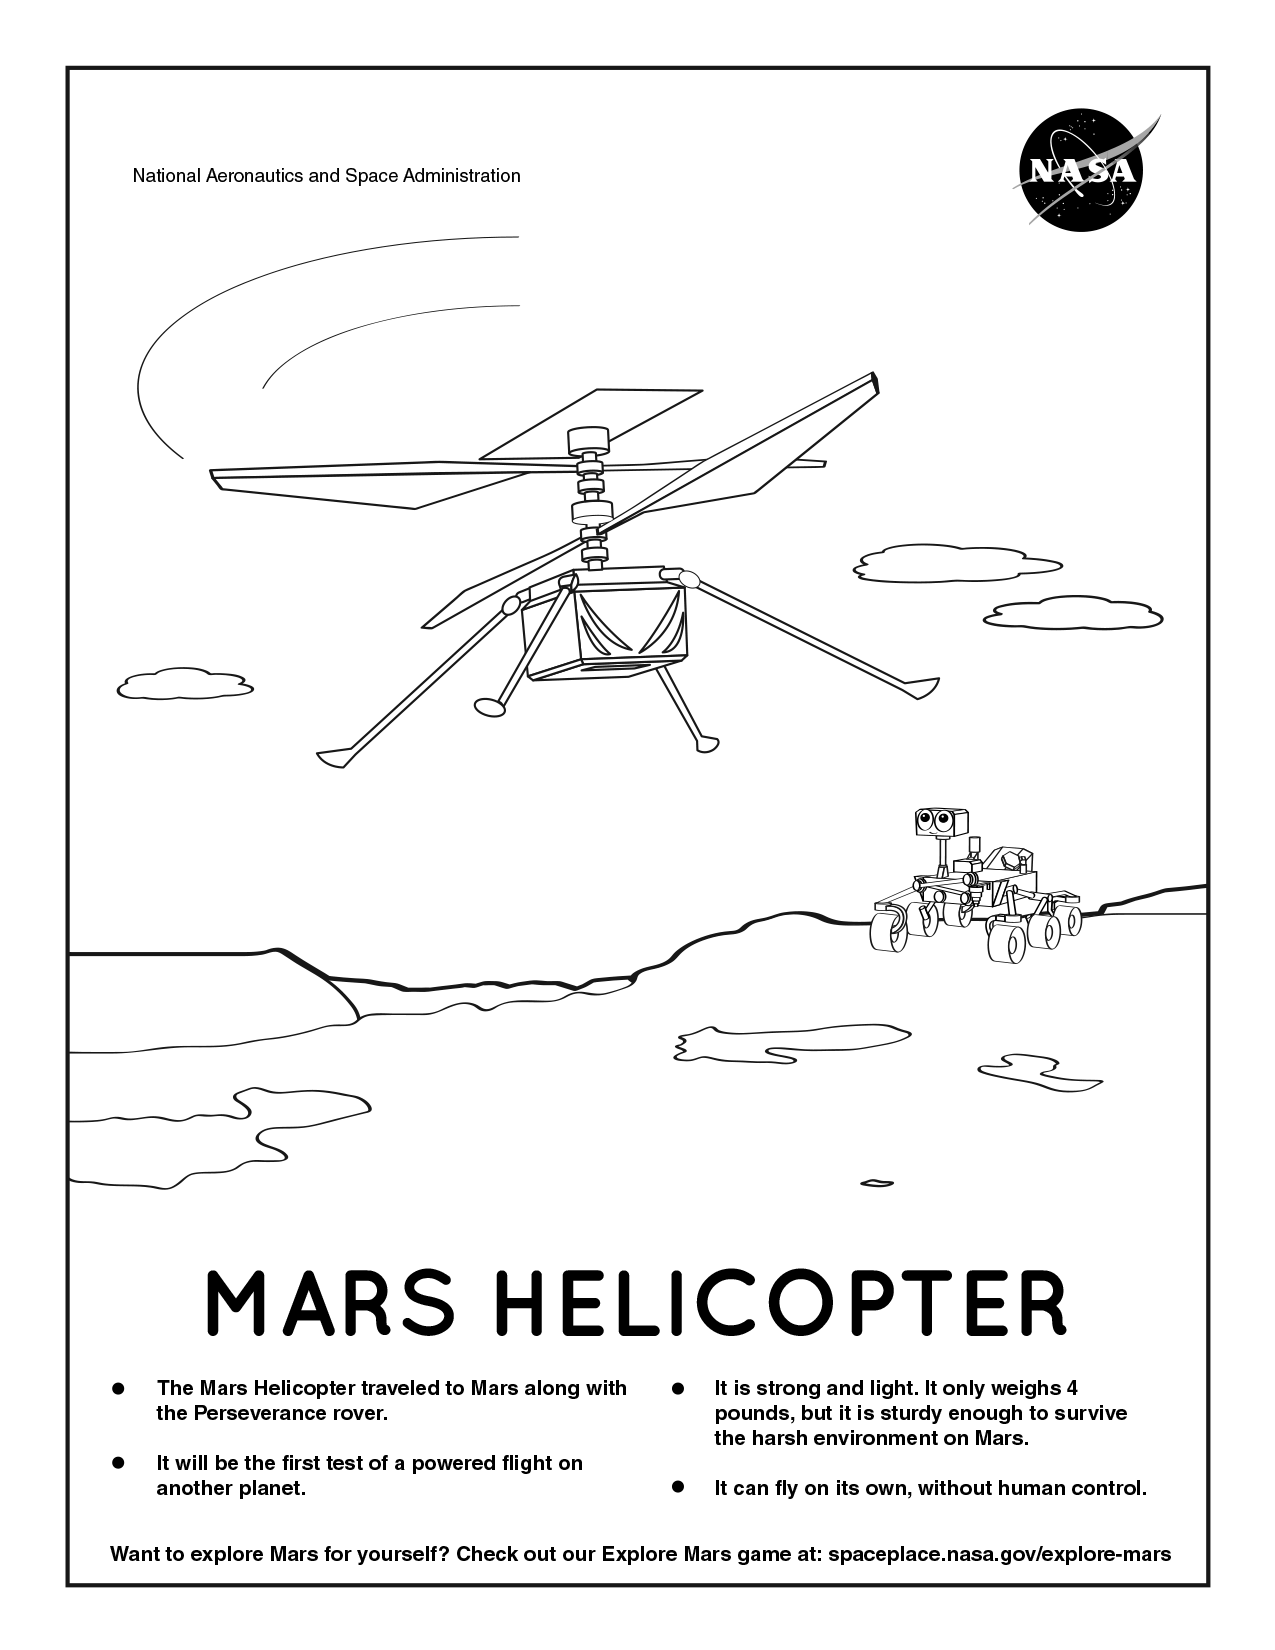 Coloring page for Mars Helicopter.